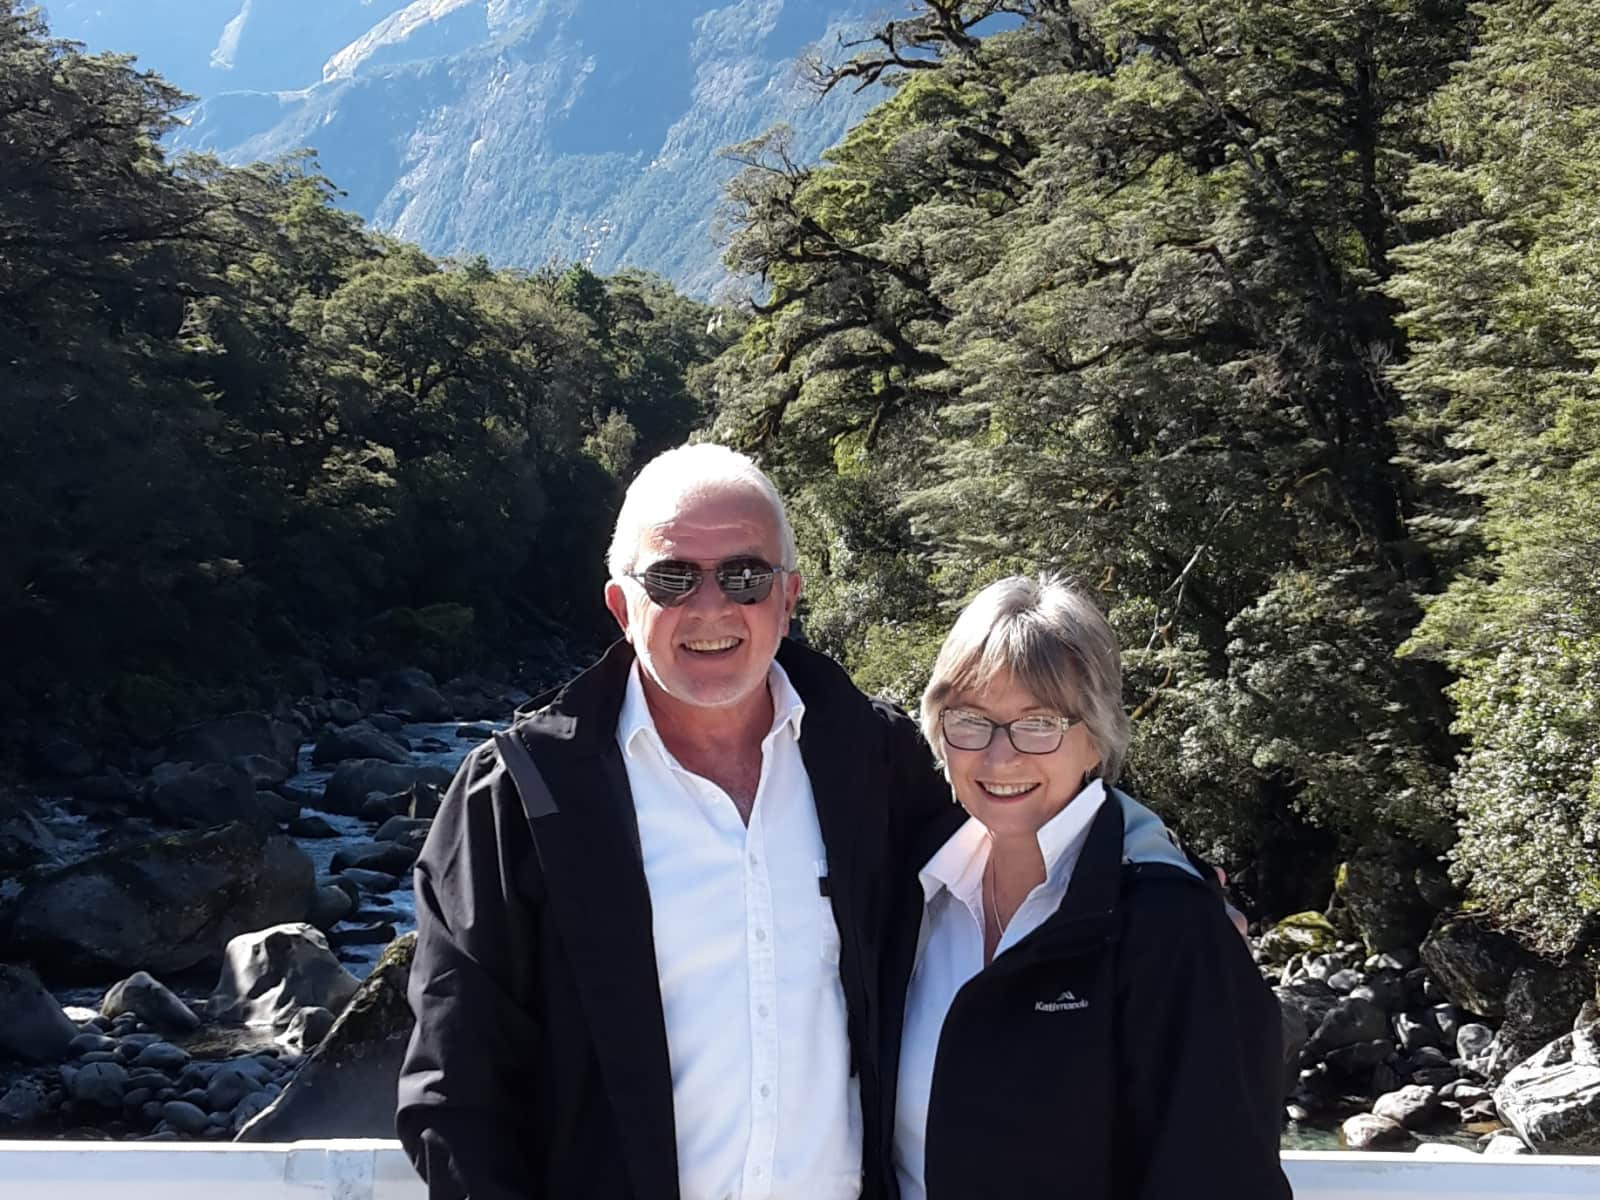 Roger & Gail from Christchurch, New Zealand